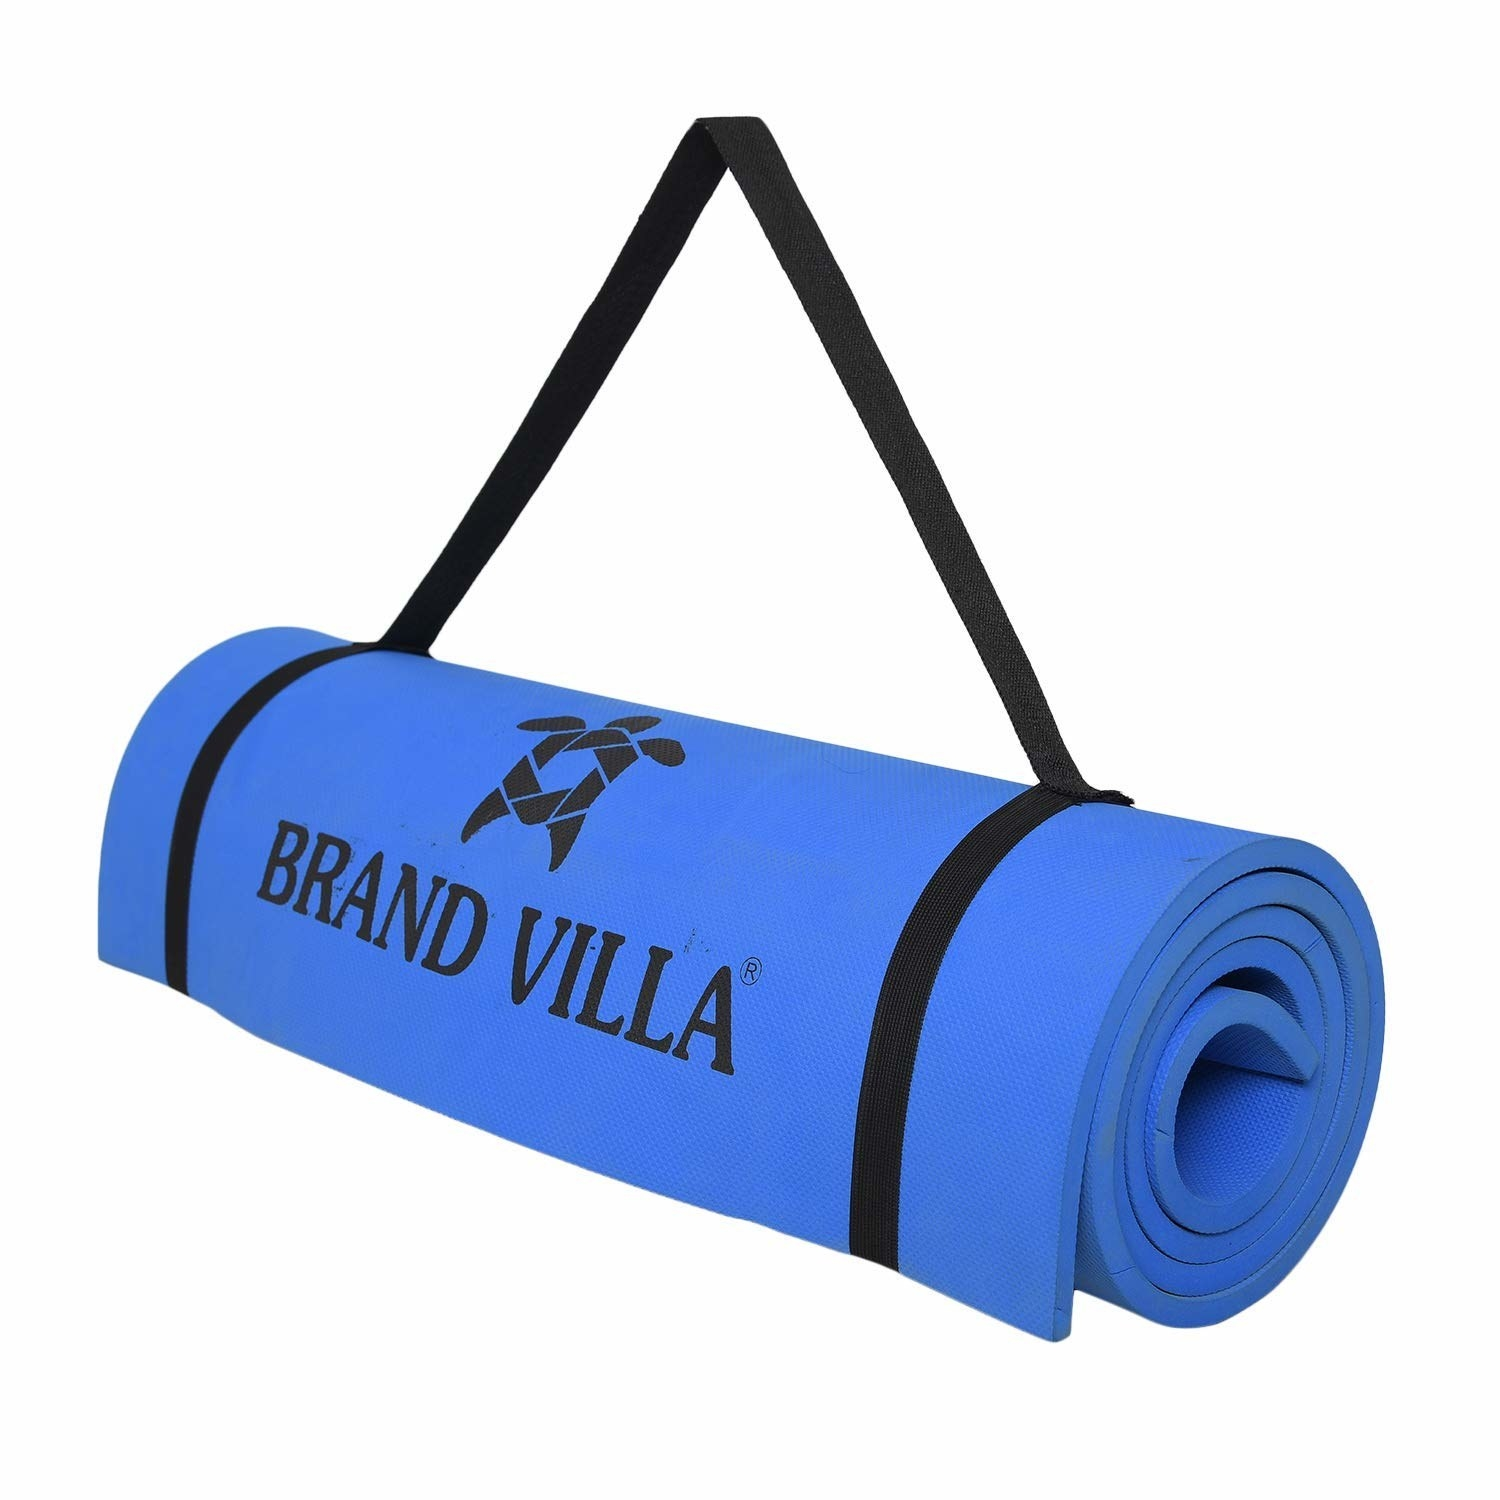 A blue yoga mat